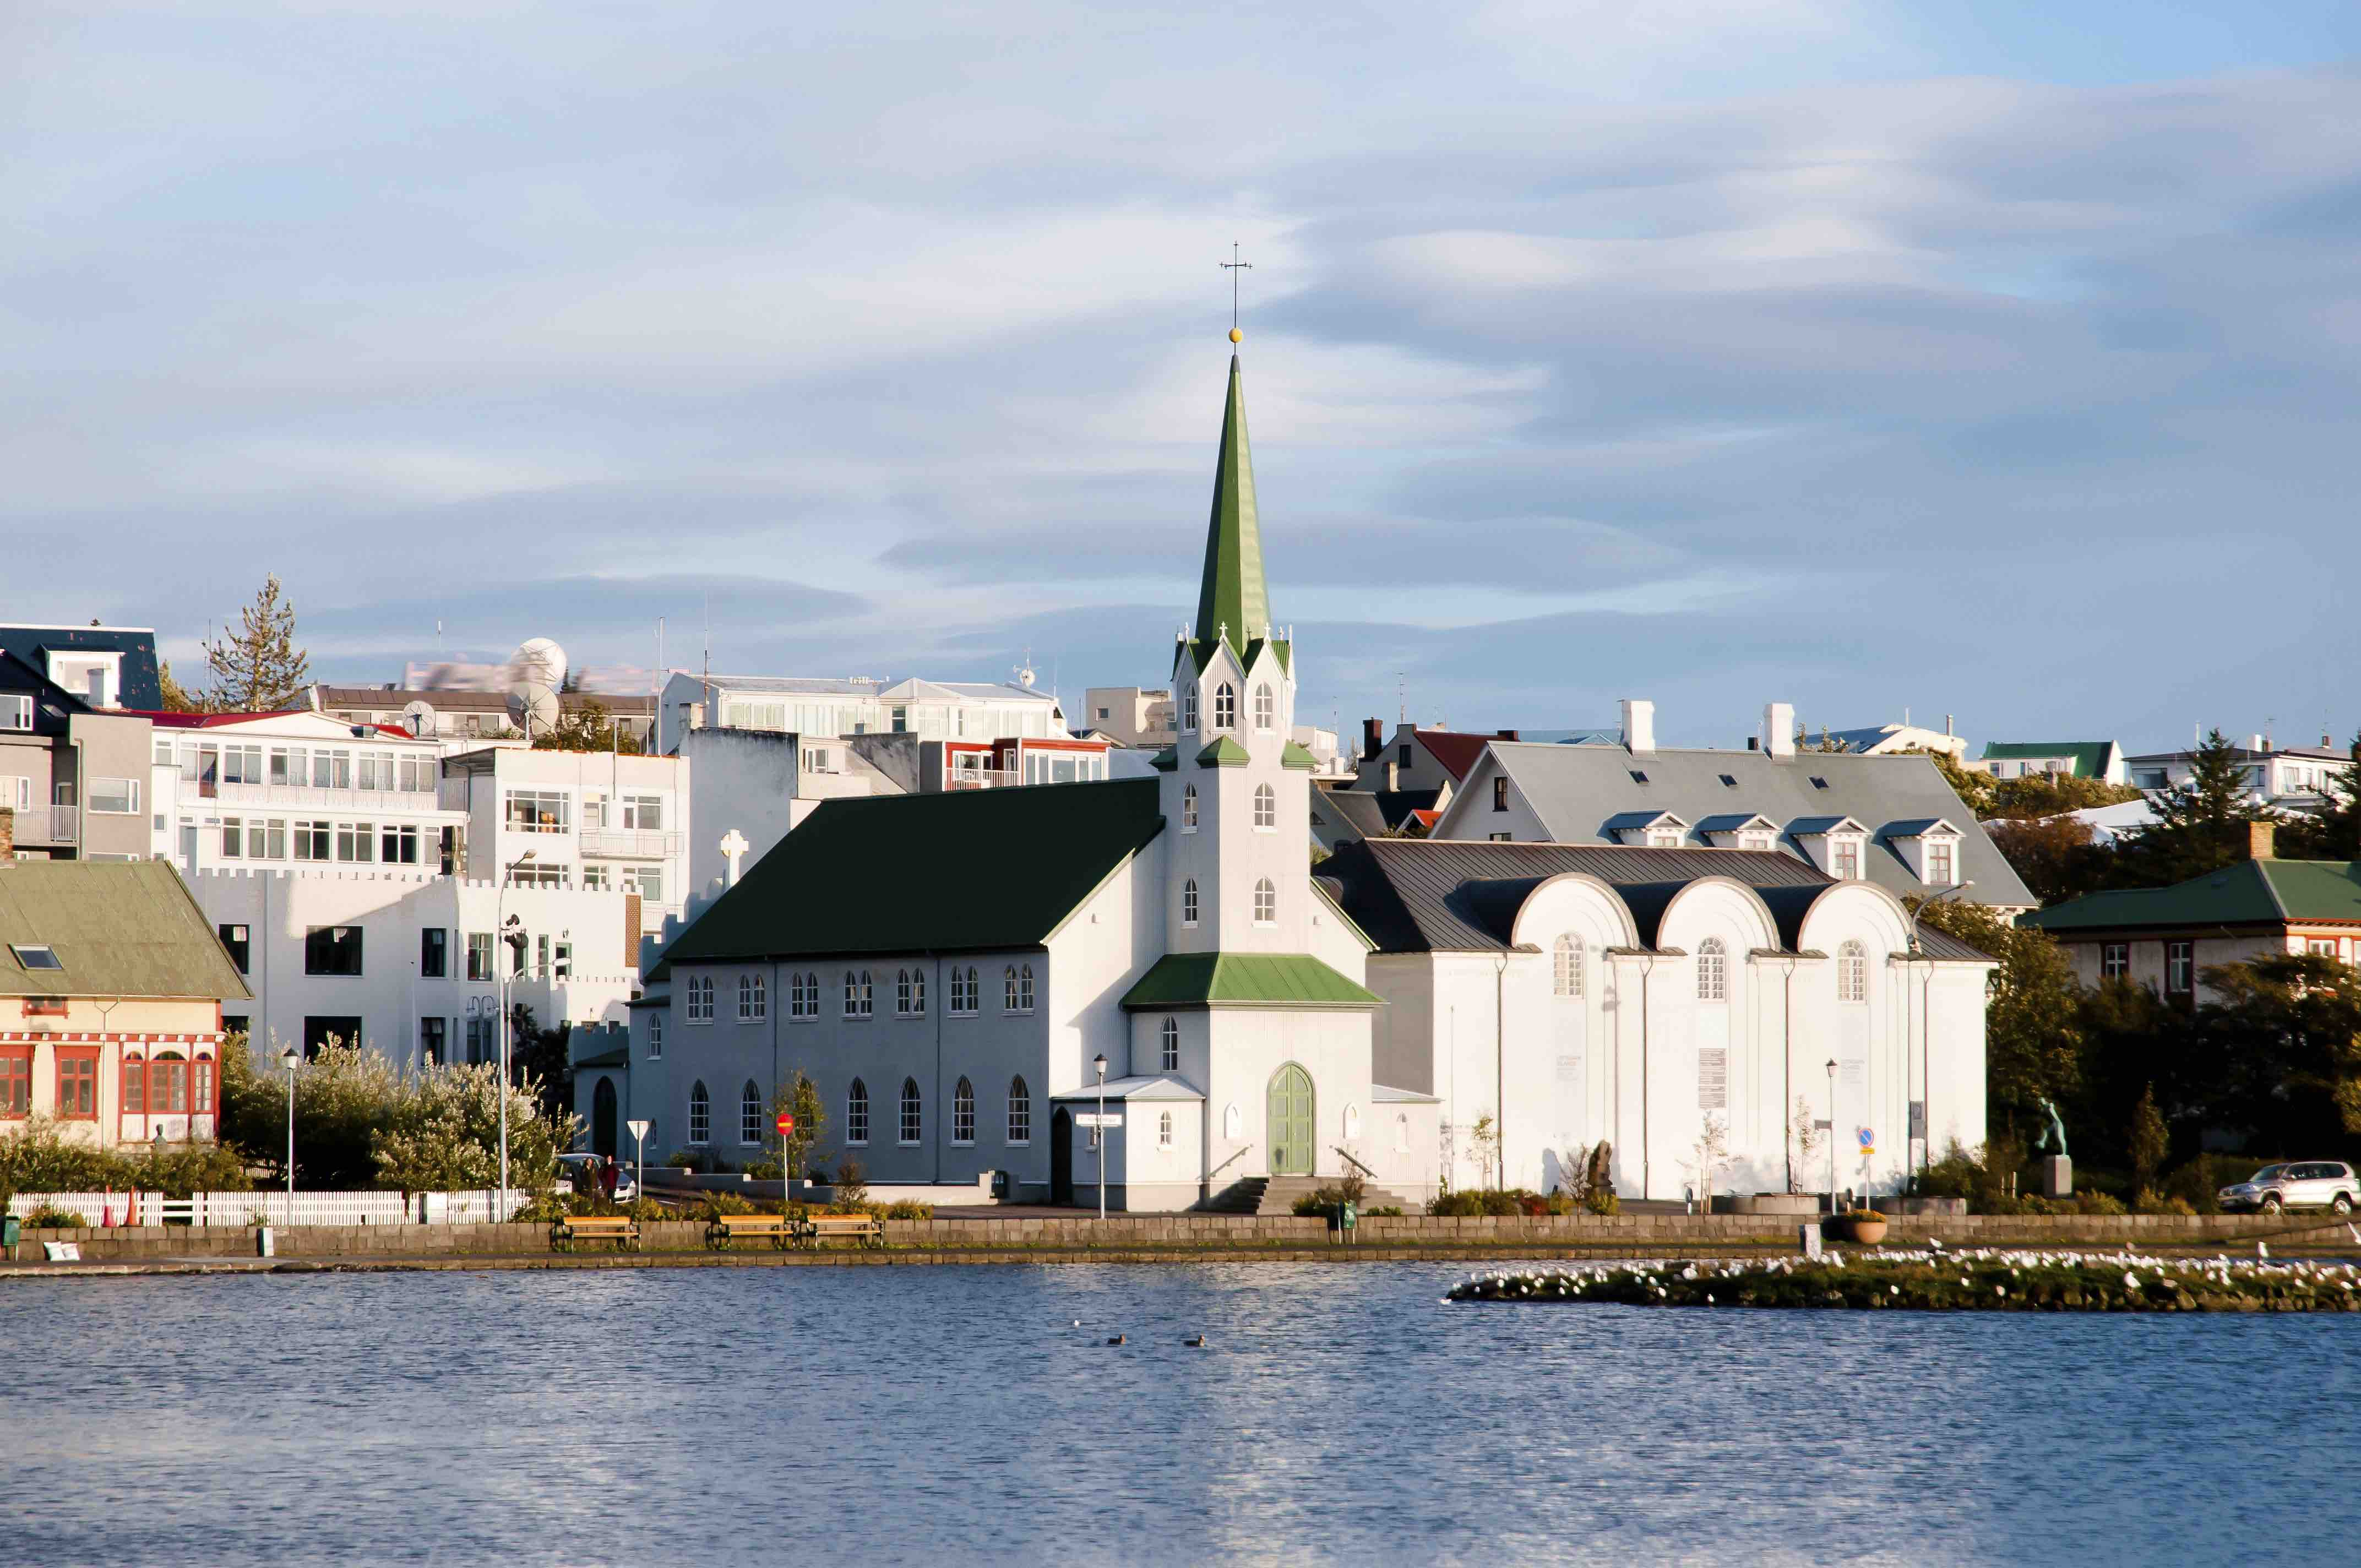 Reykjavik, seen from the old harbour.